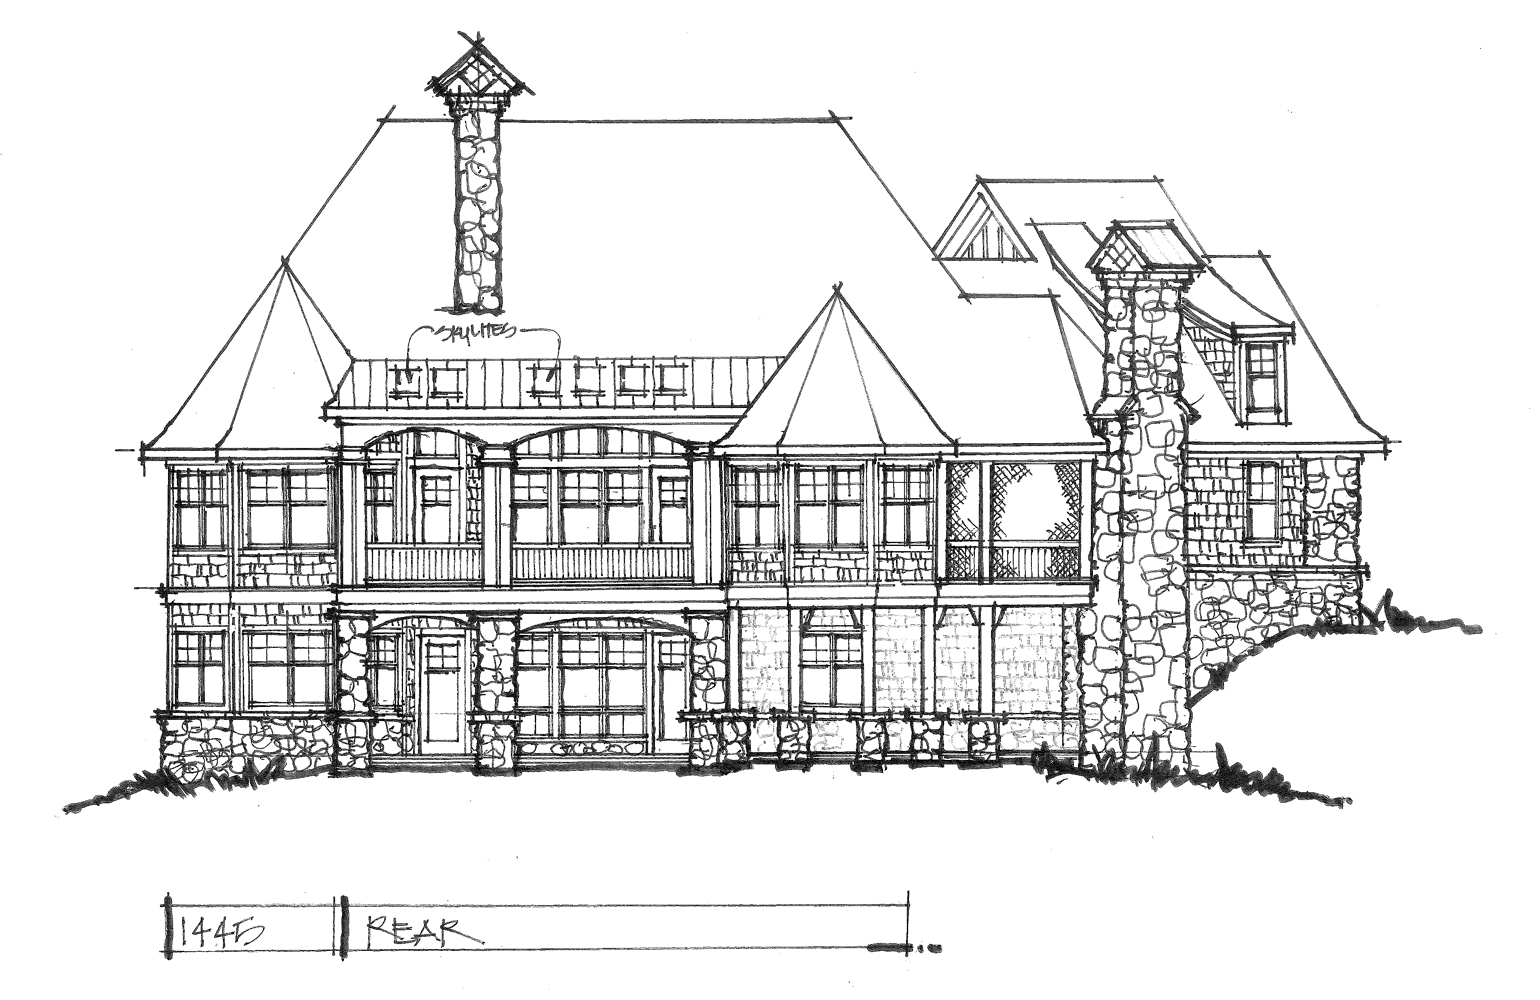 Check out the rear elevation of home plan 1445.